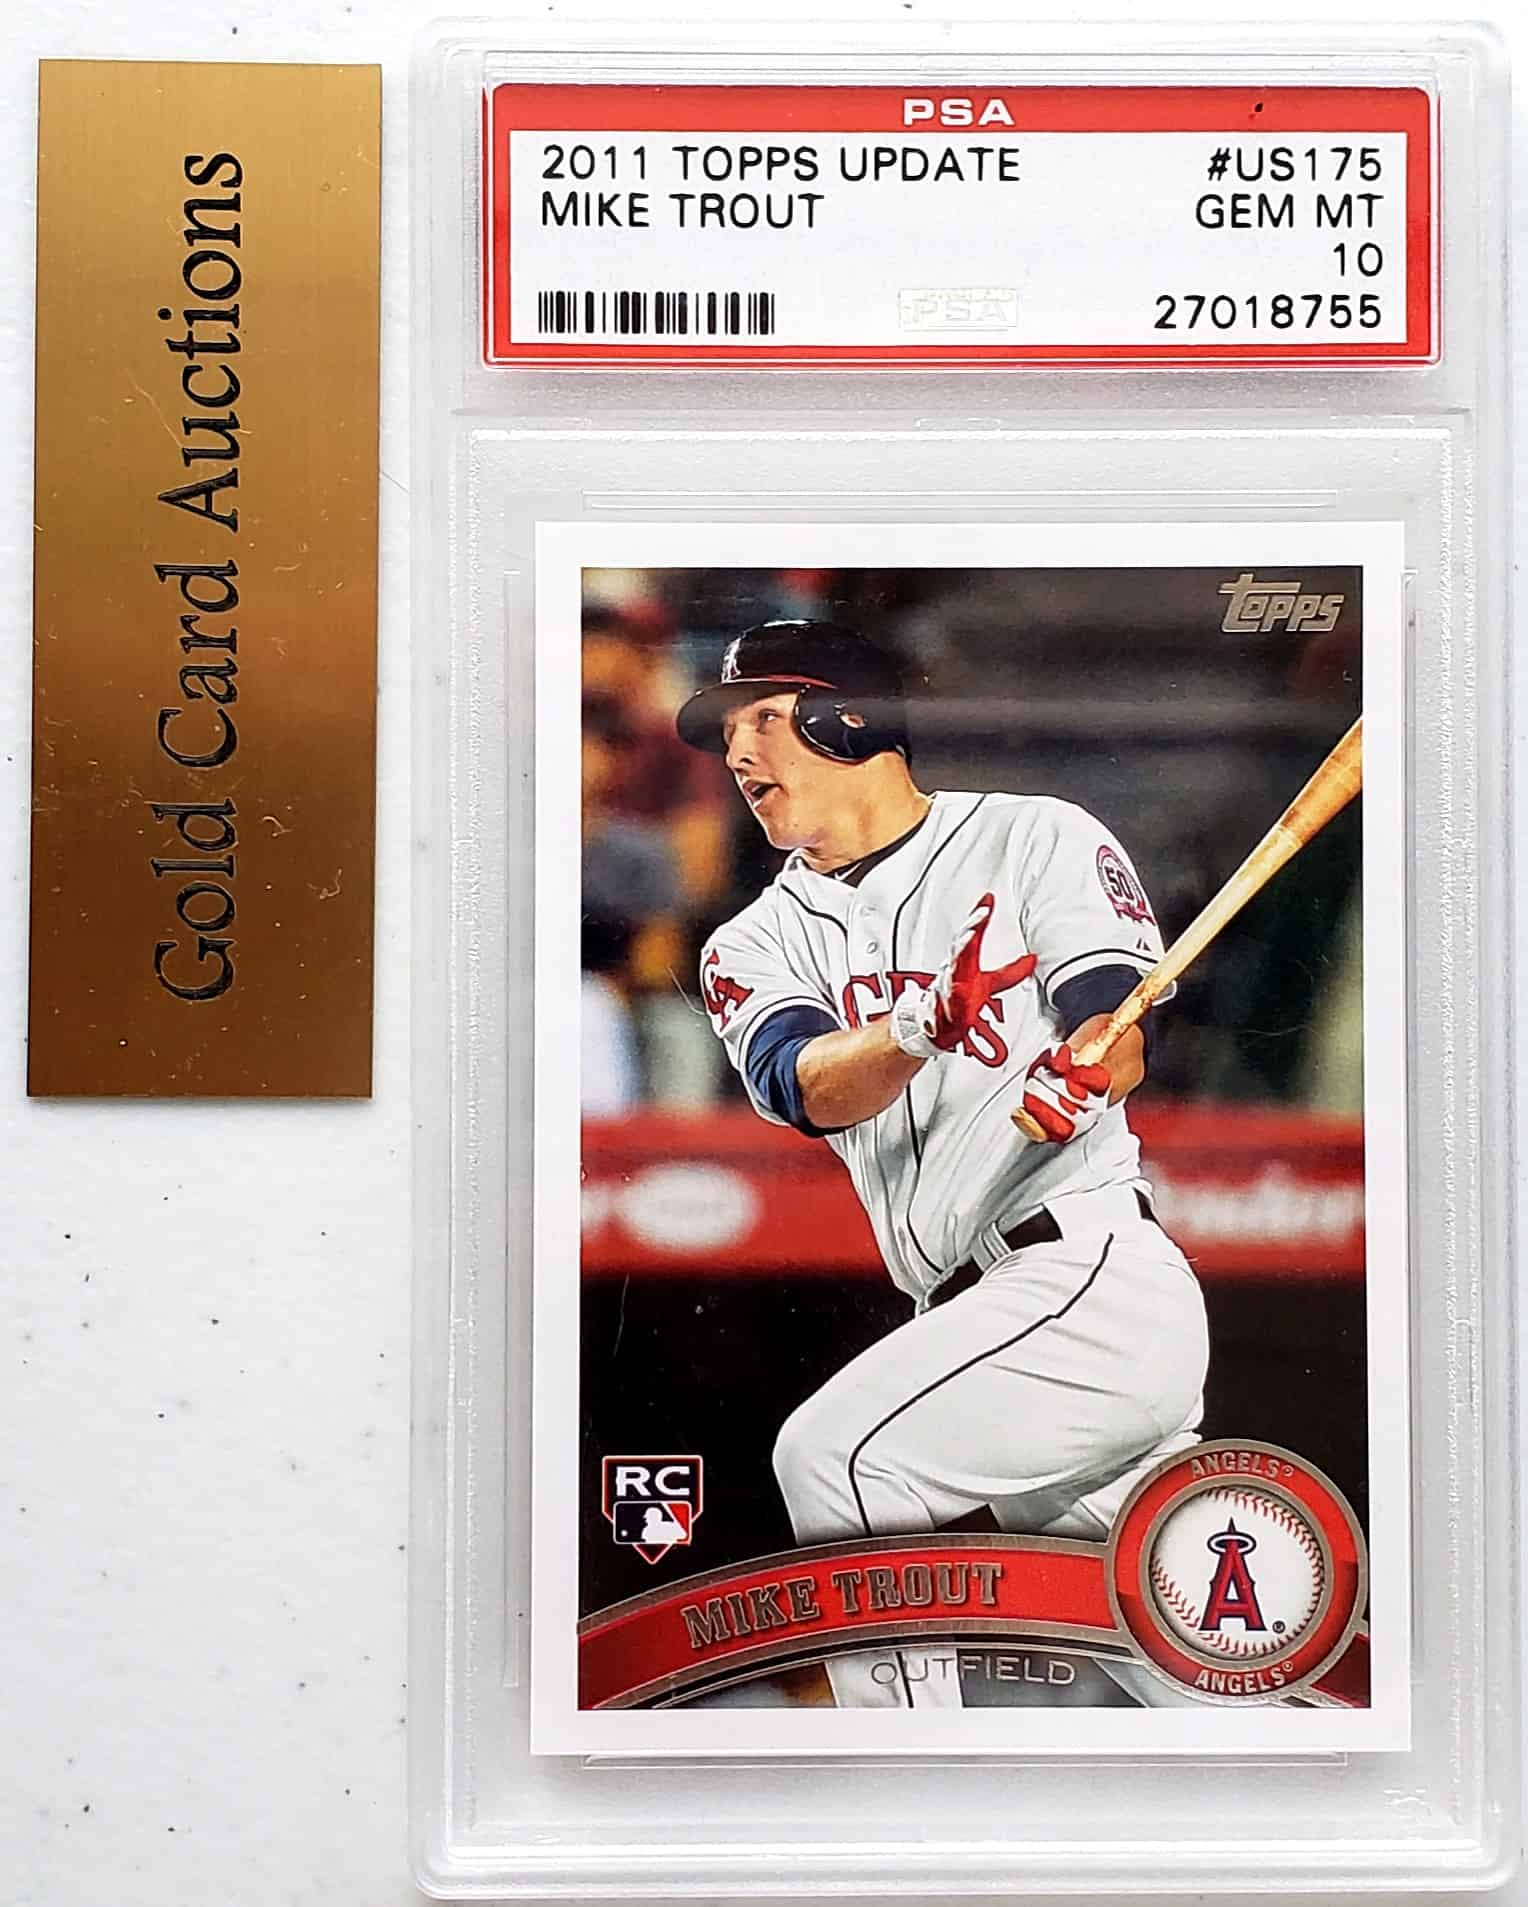 2011 topps update mike trout